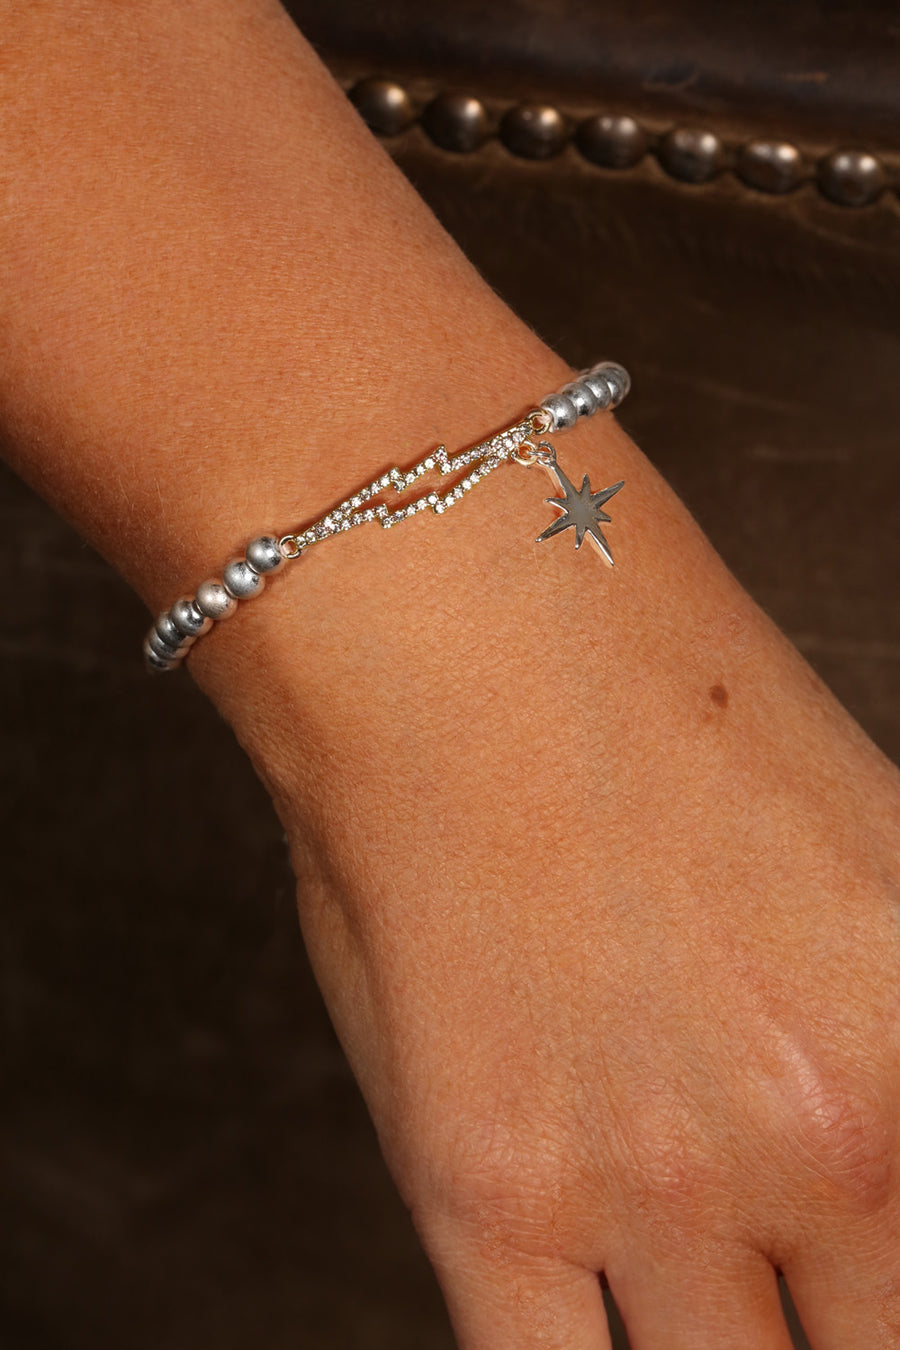 Kate Thornton 'Bowie' Crystal Lightning Bolt Friendship Bracelet in Silver and Gold